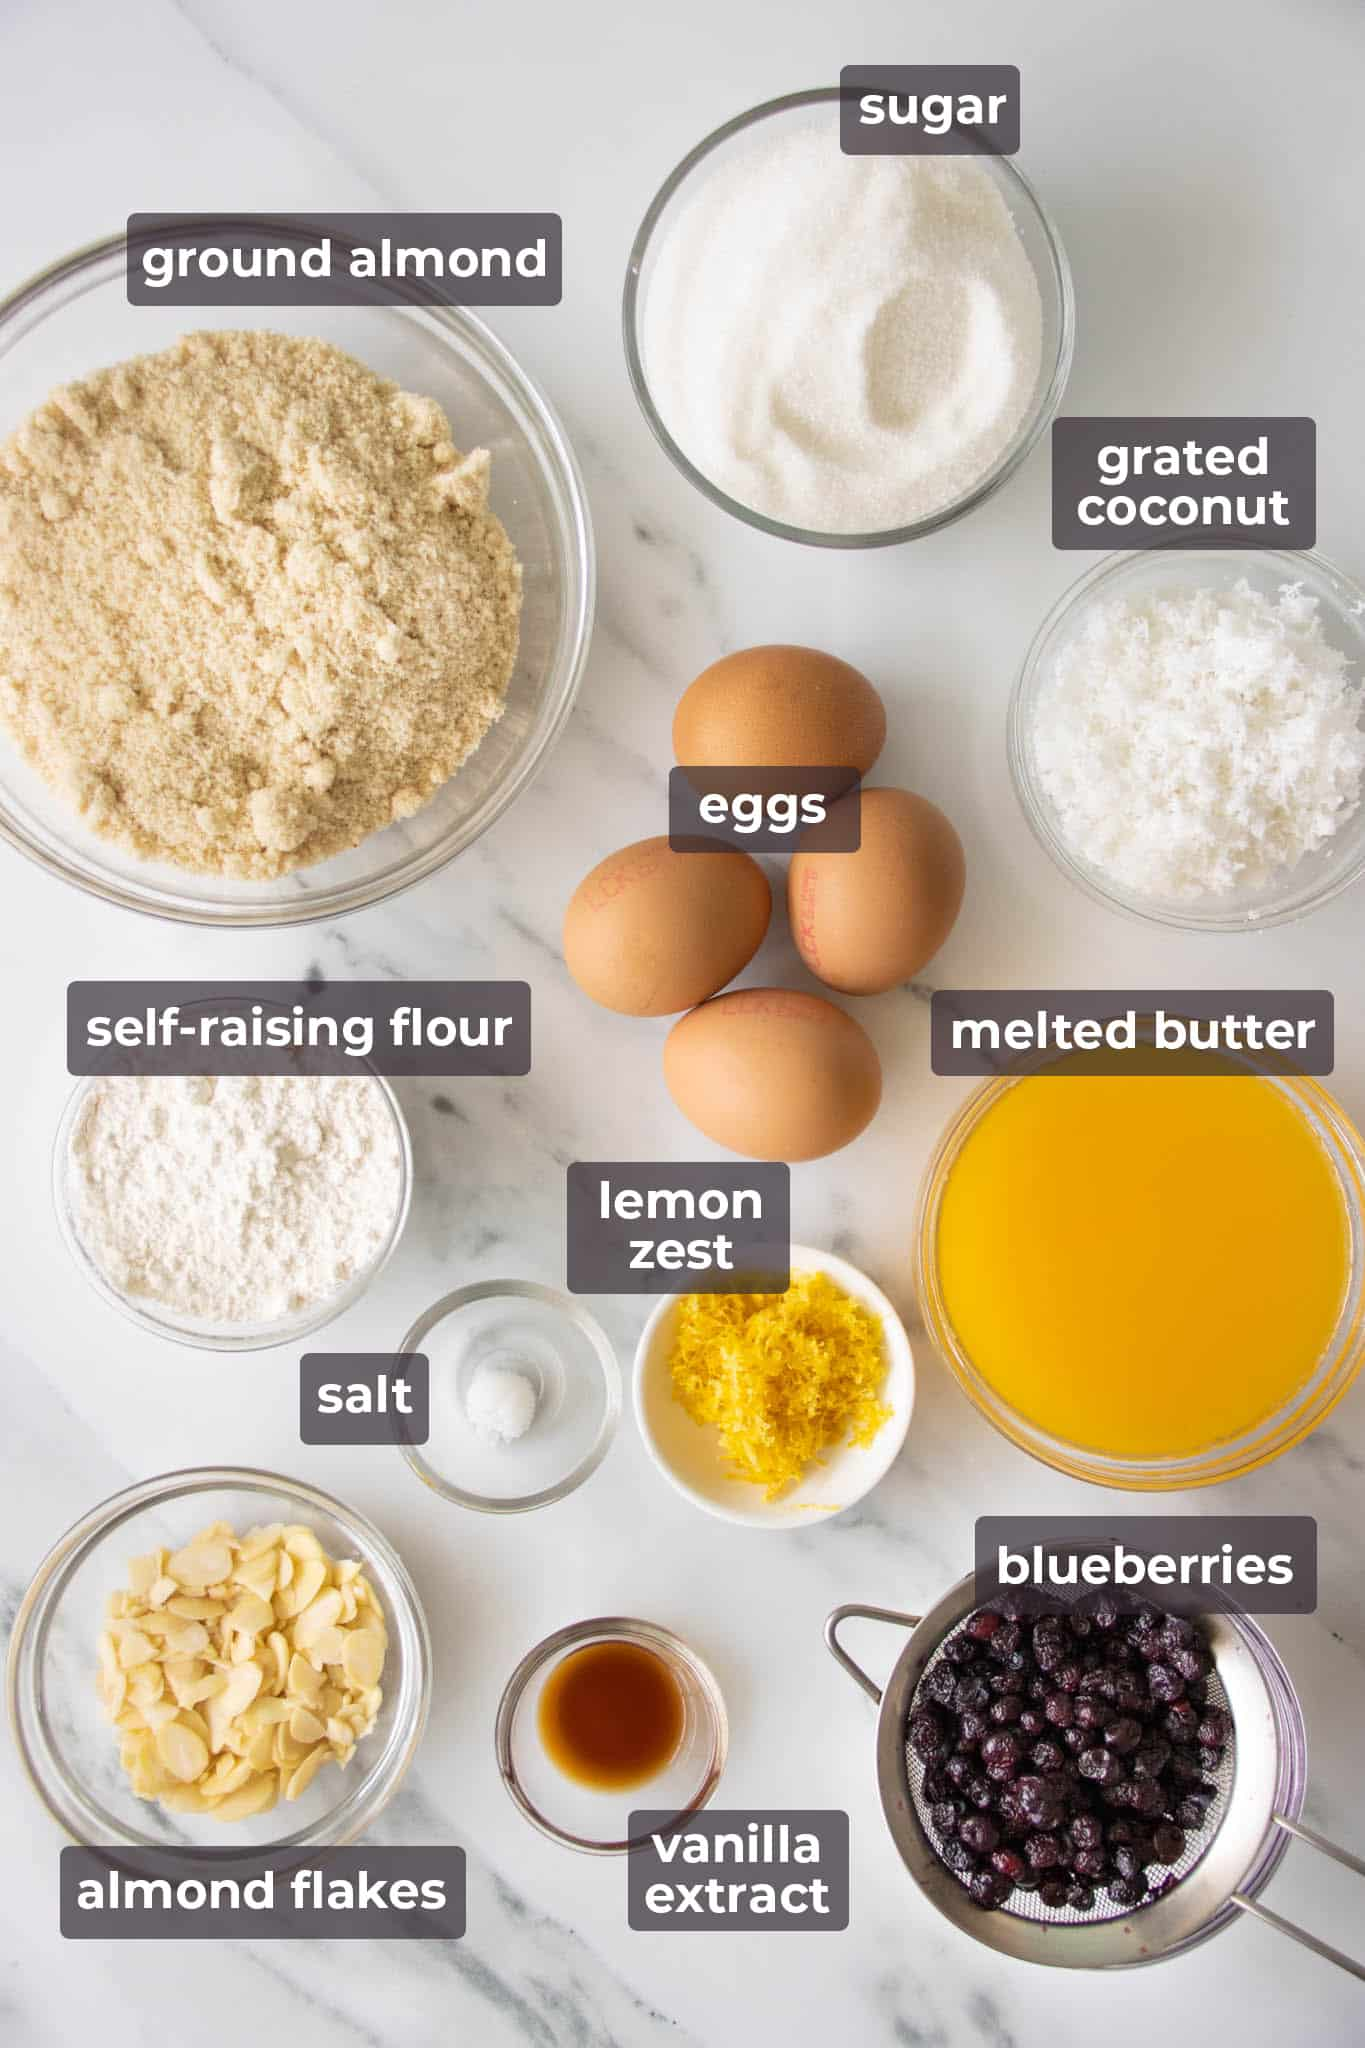 Ingredients for making coconut, almond and blueberry cake